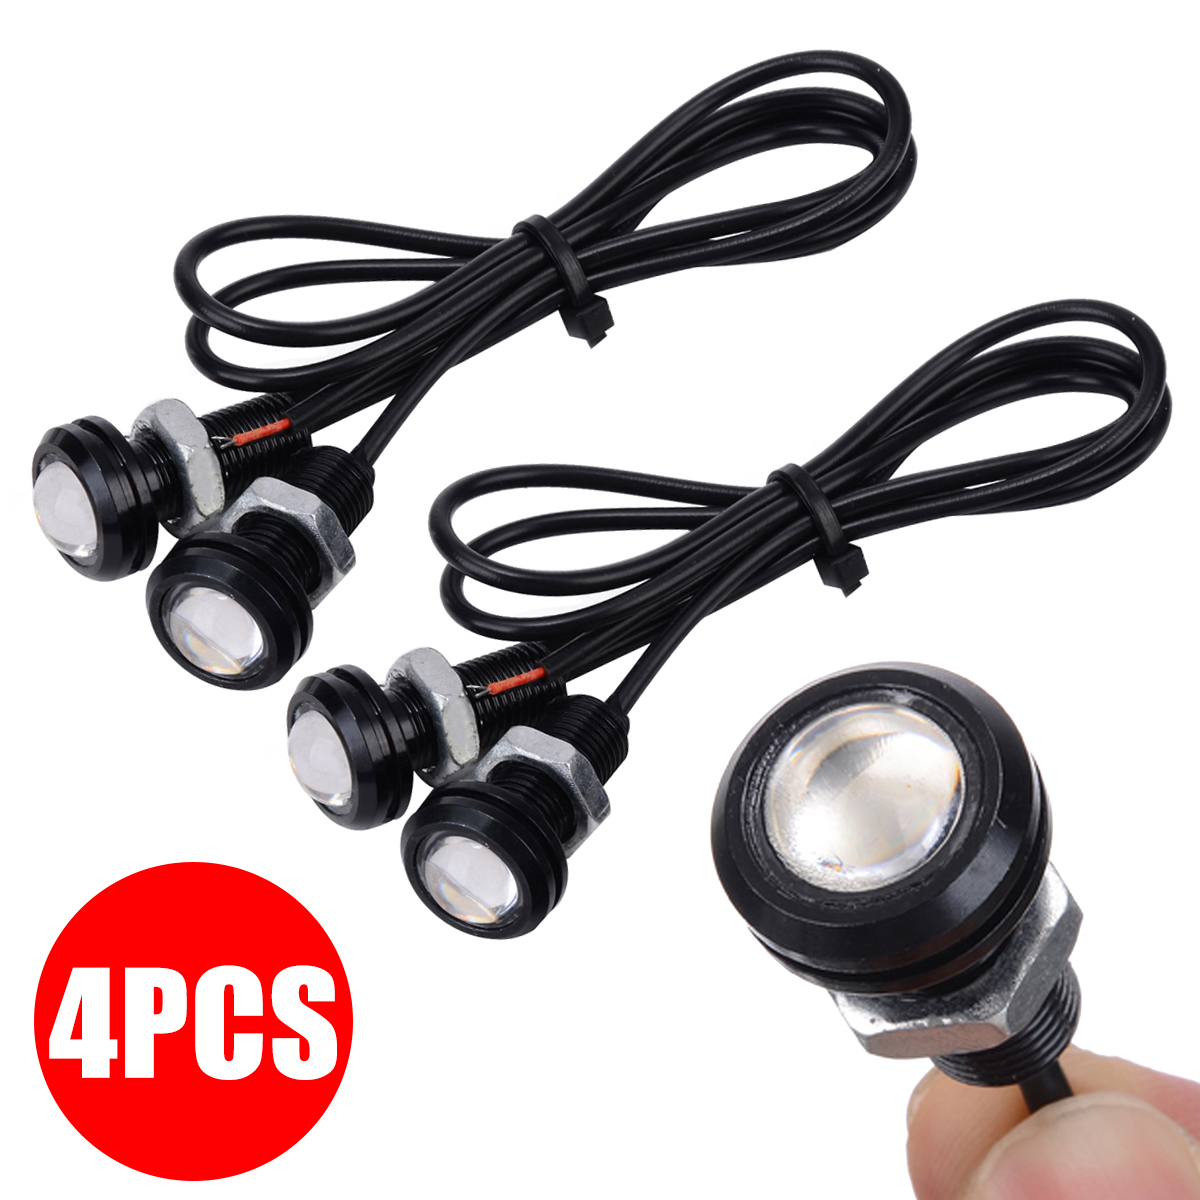 4Pcs/Set Blue LED Boat Plug Light Waterproof Marine Underwater Fish Boat Light Parts Accessories Universal